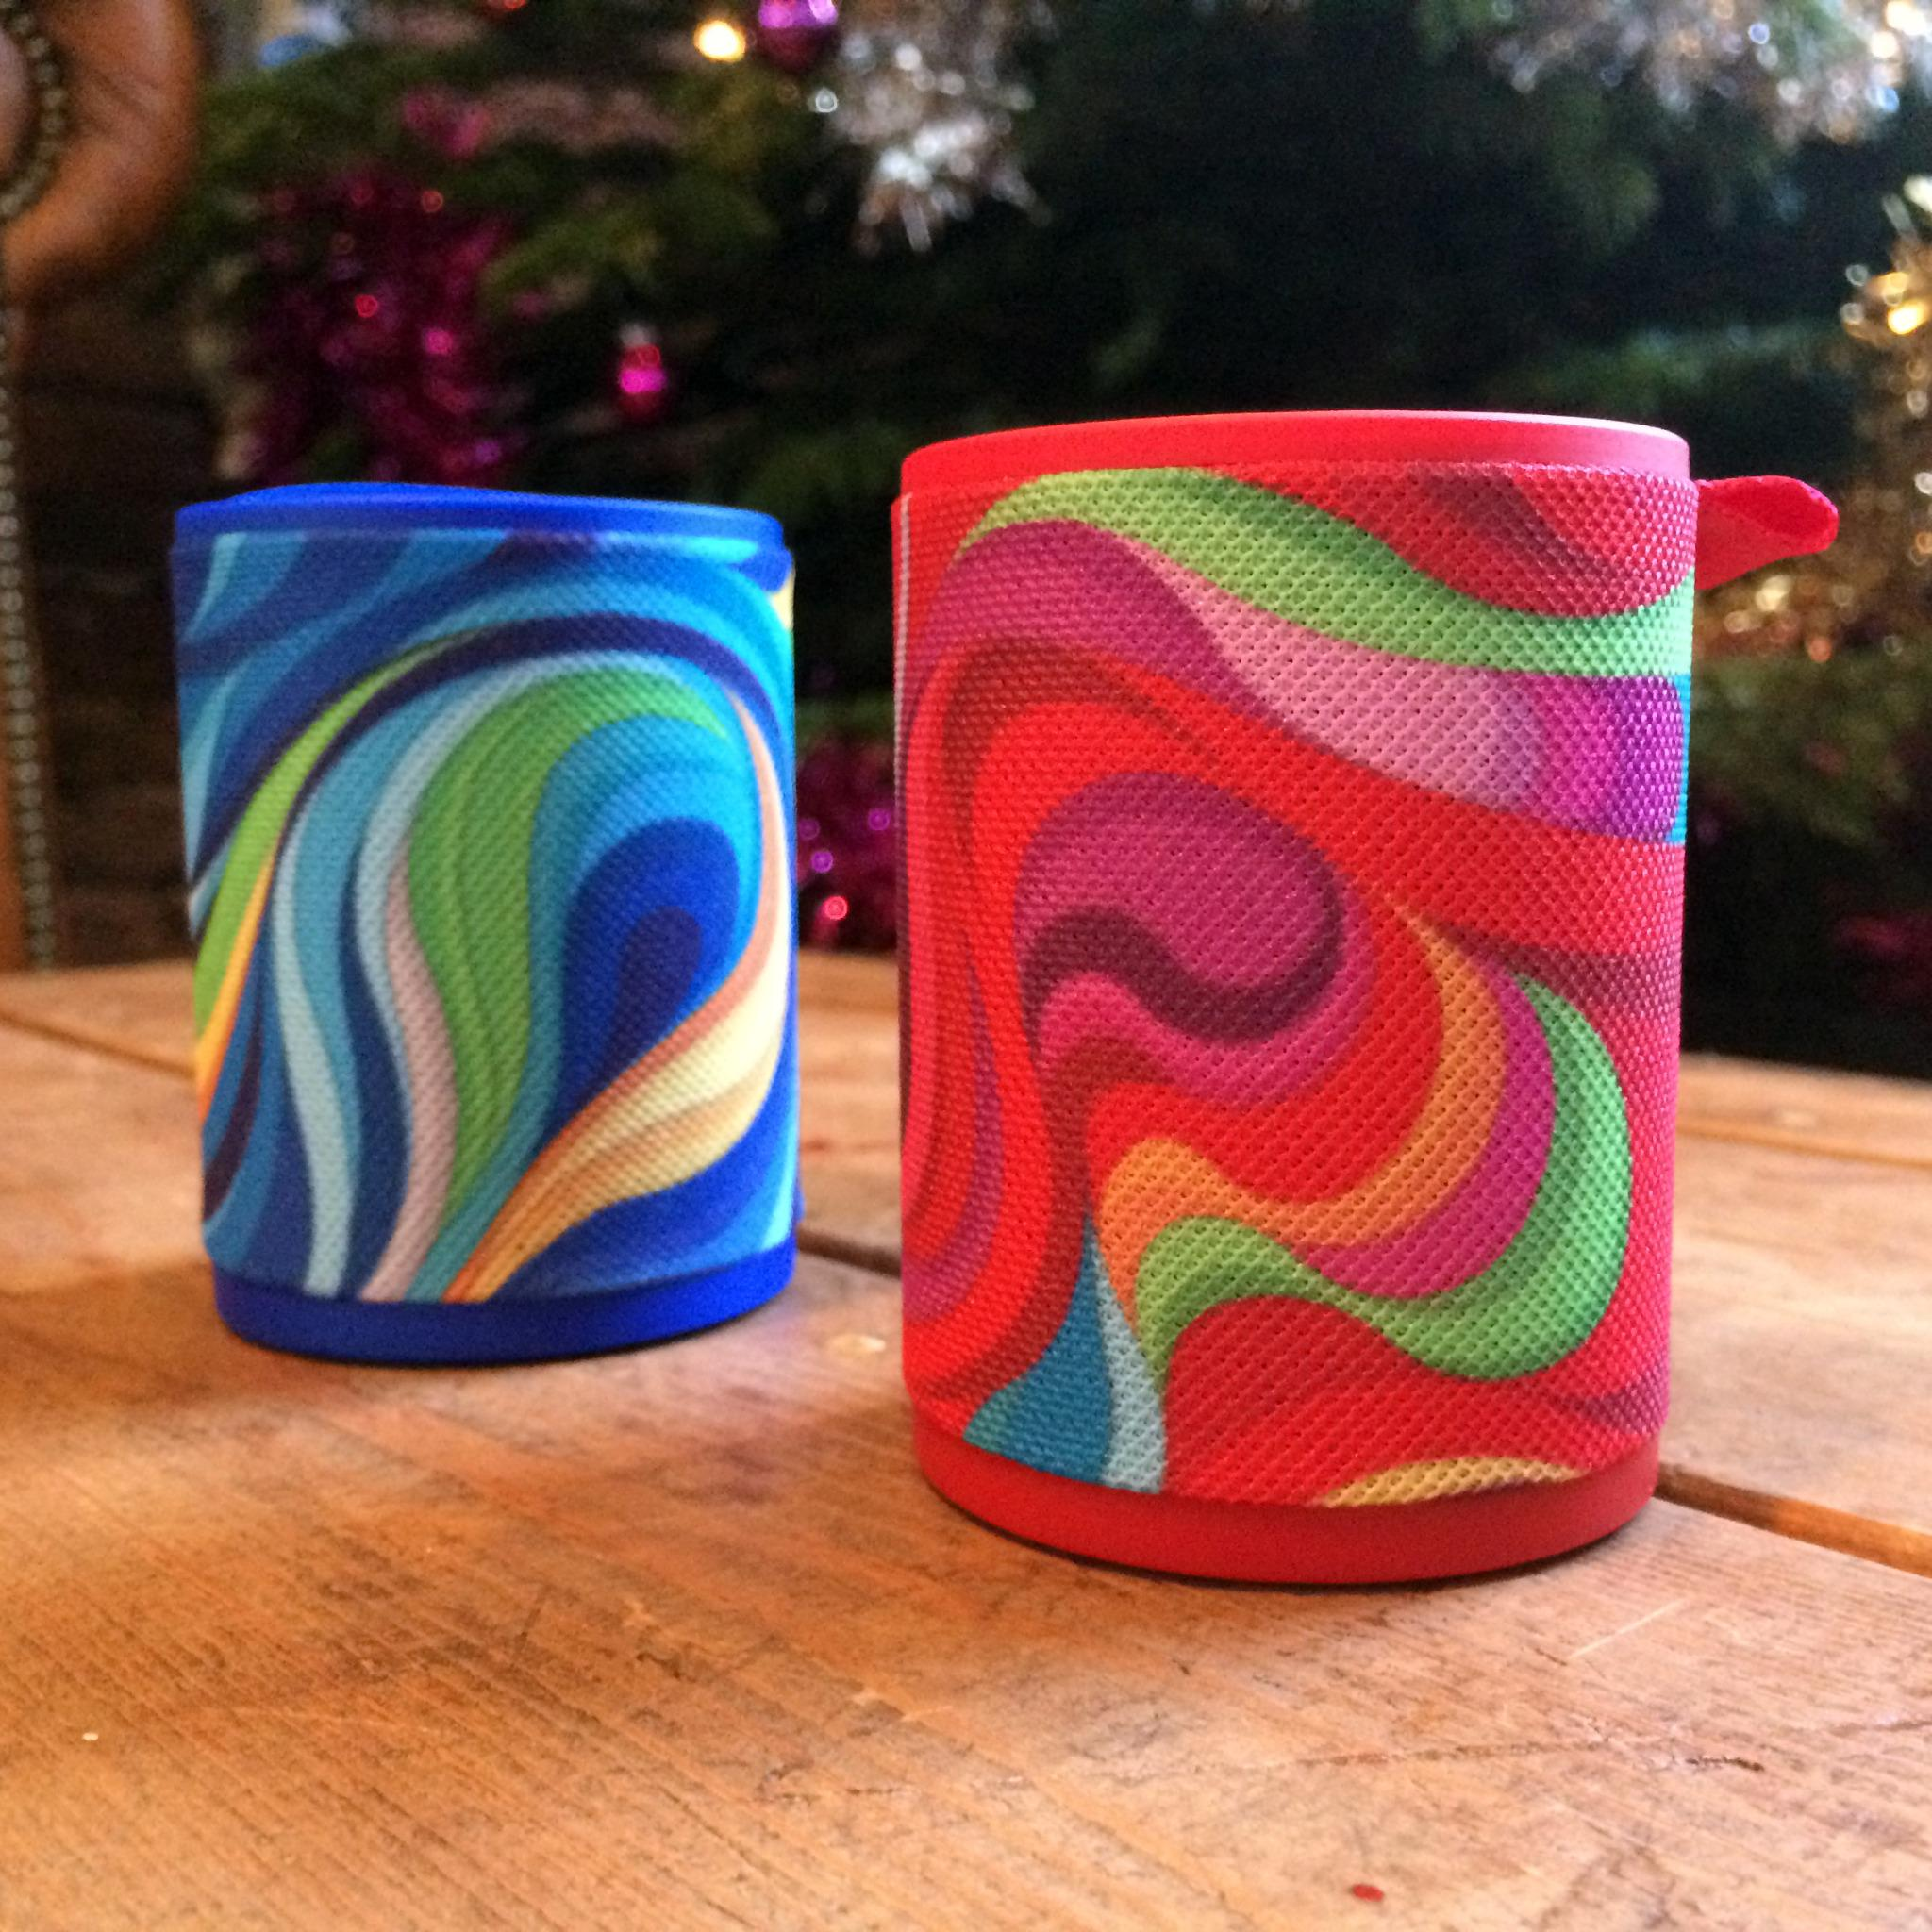 RT @JellyLondon: Check out @brand_nu's illustrations on these portable speakers. Perfect for #Christmas playlists on the go! http://t.co/bf…